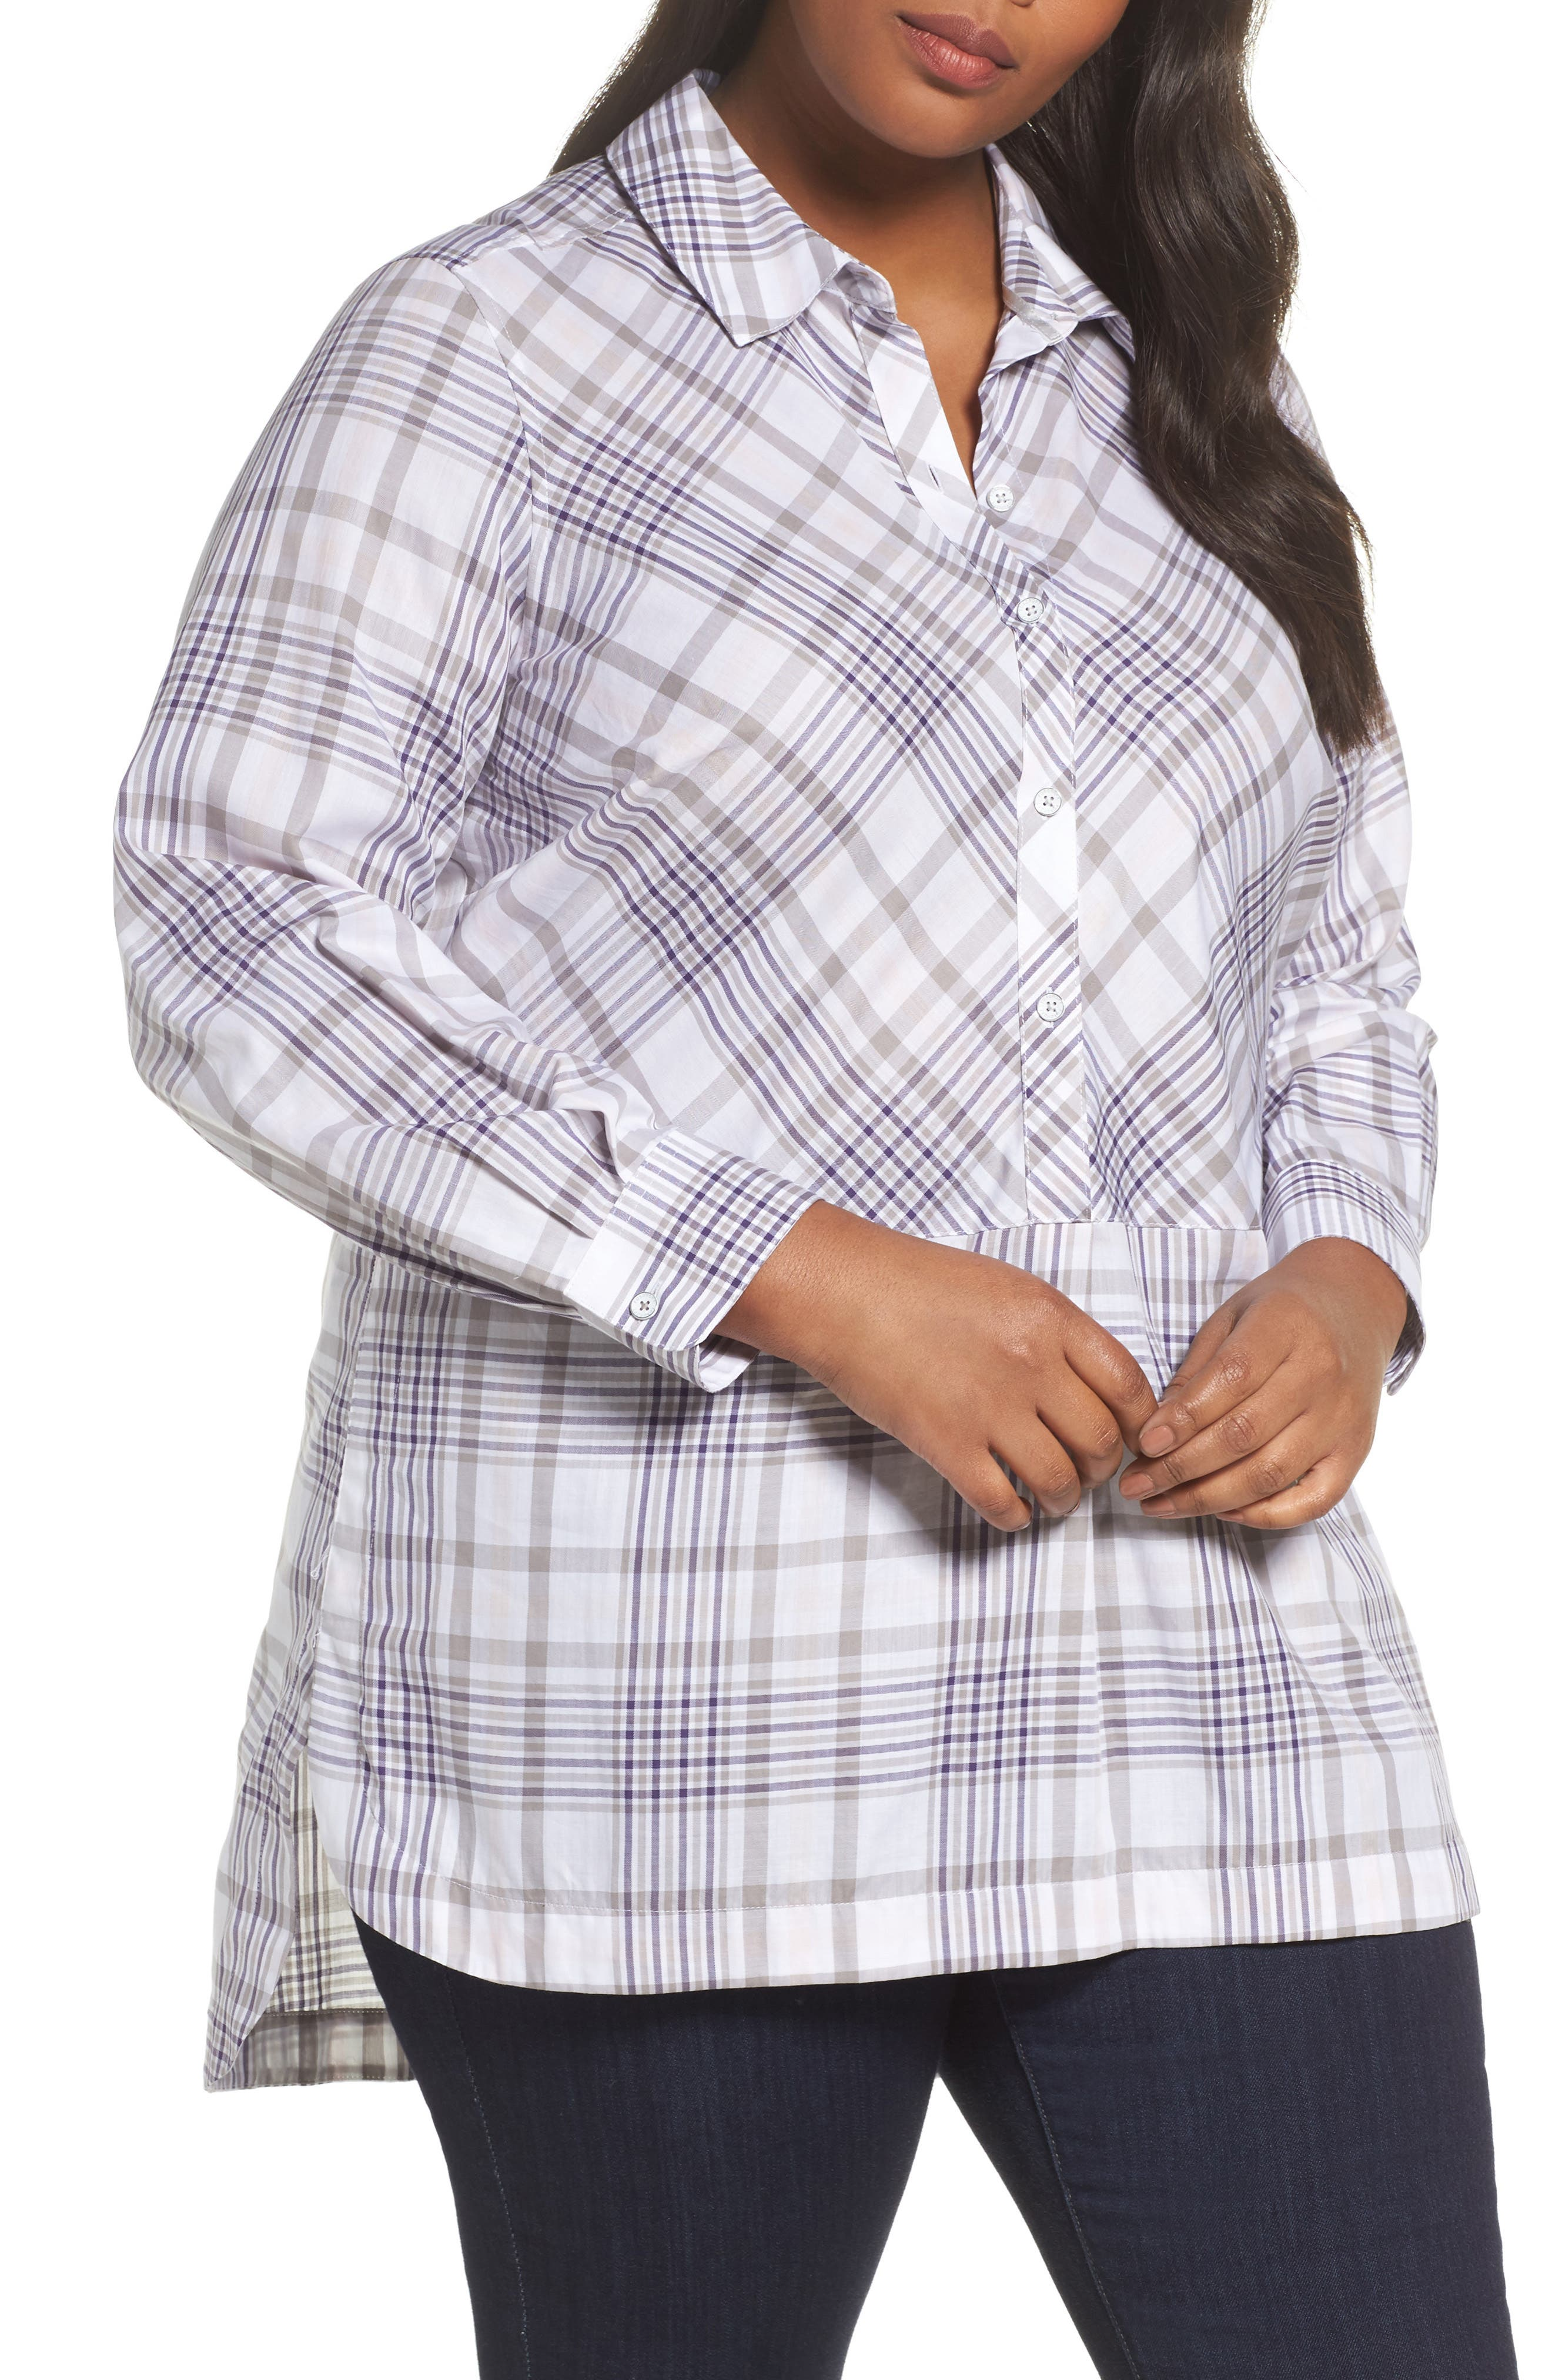 Maddy Winter Plaid Shirt,                             Main thumbnail 1, color,